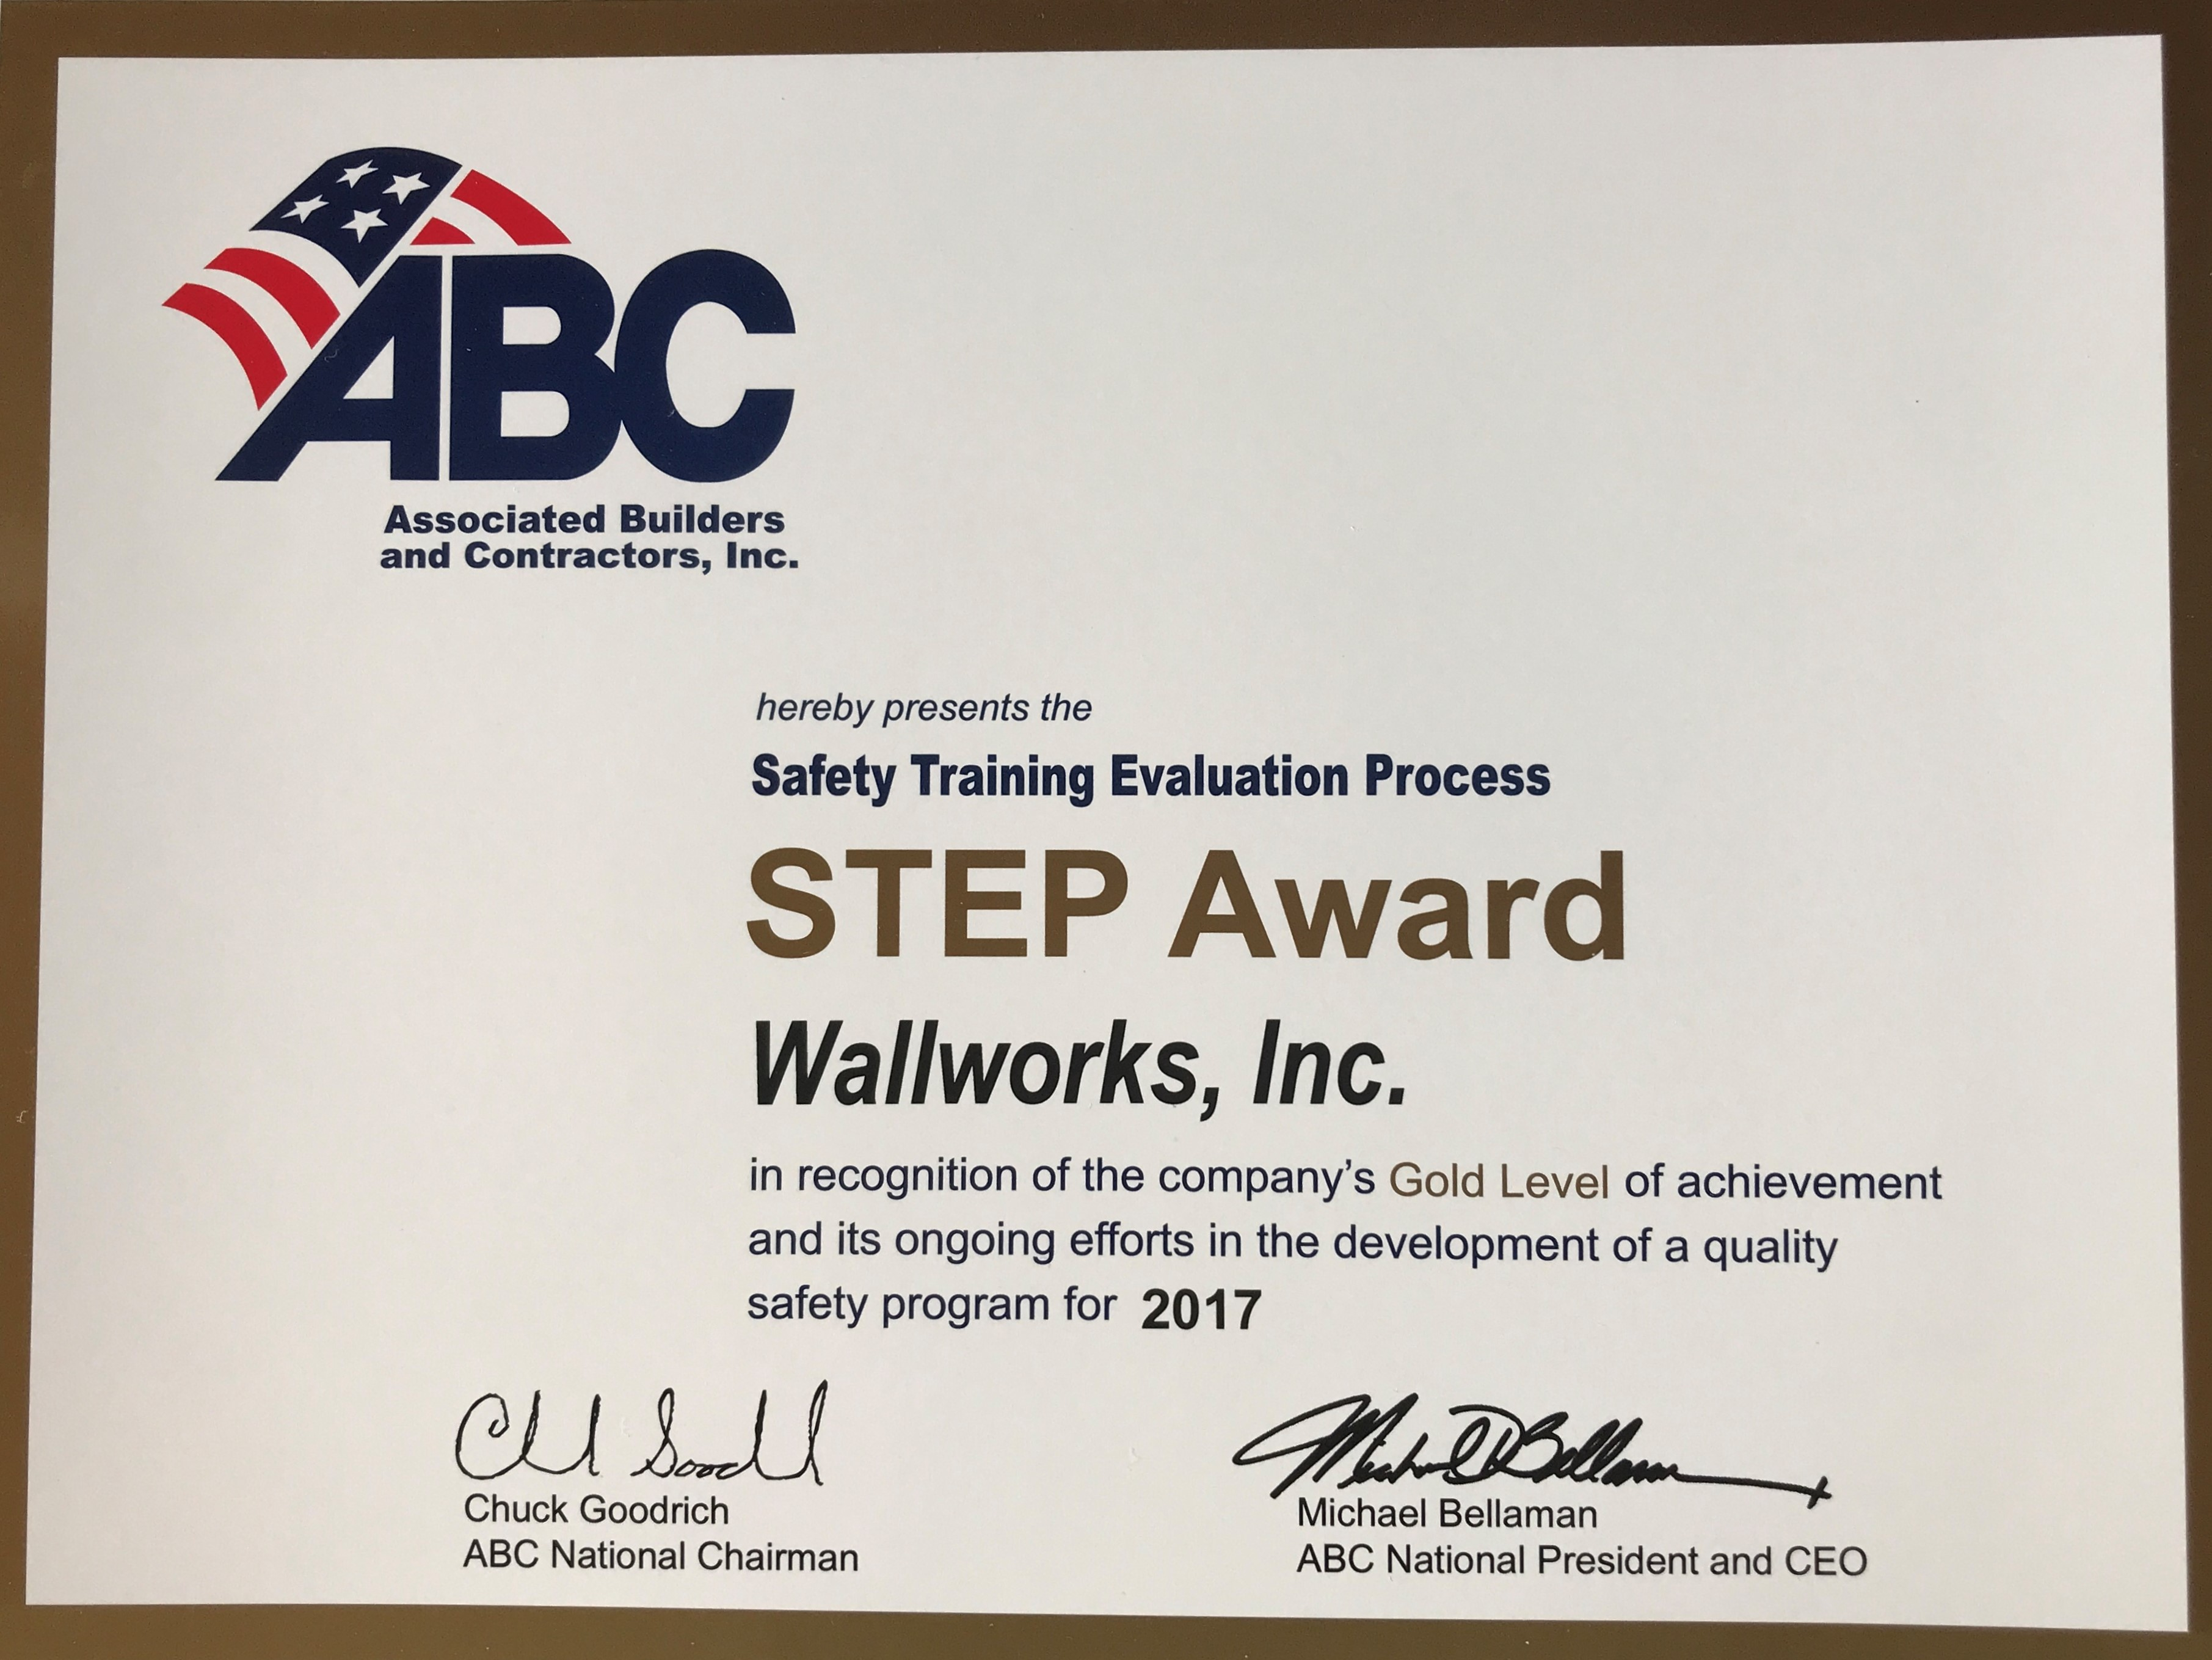 Wallworks awarded STEP Gold for commitment to Safety!